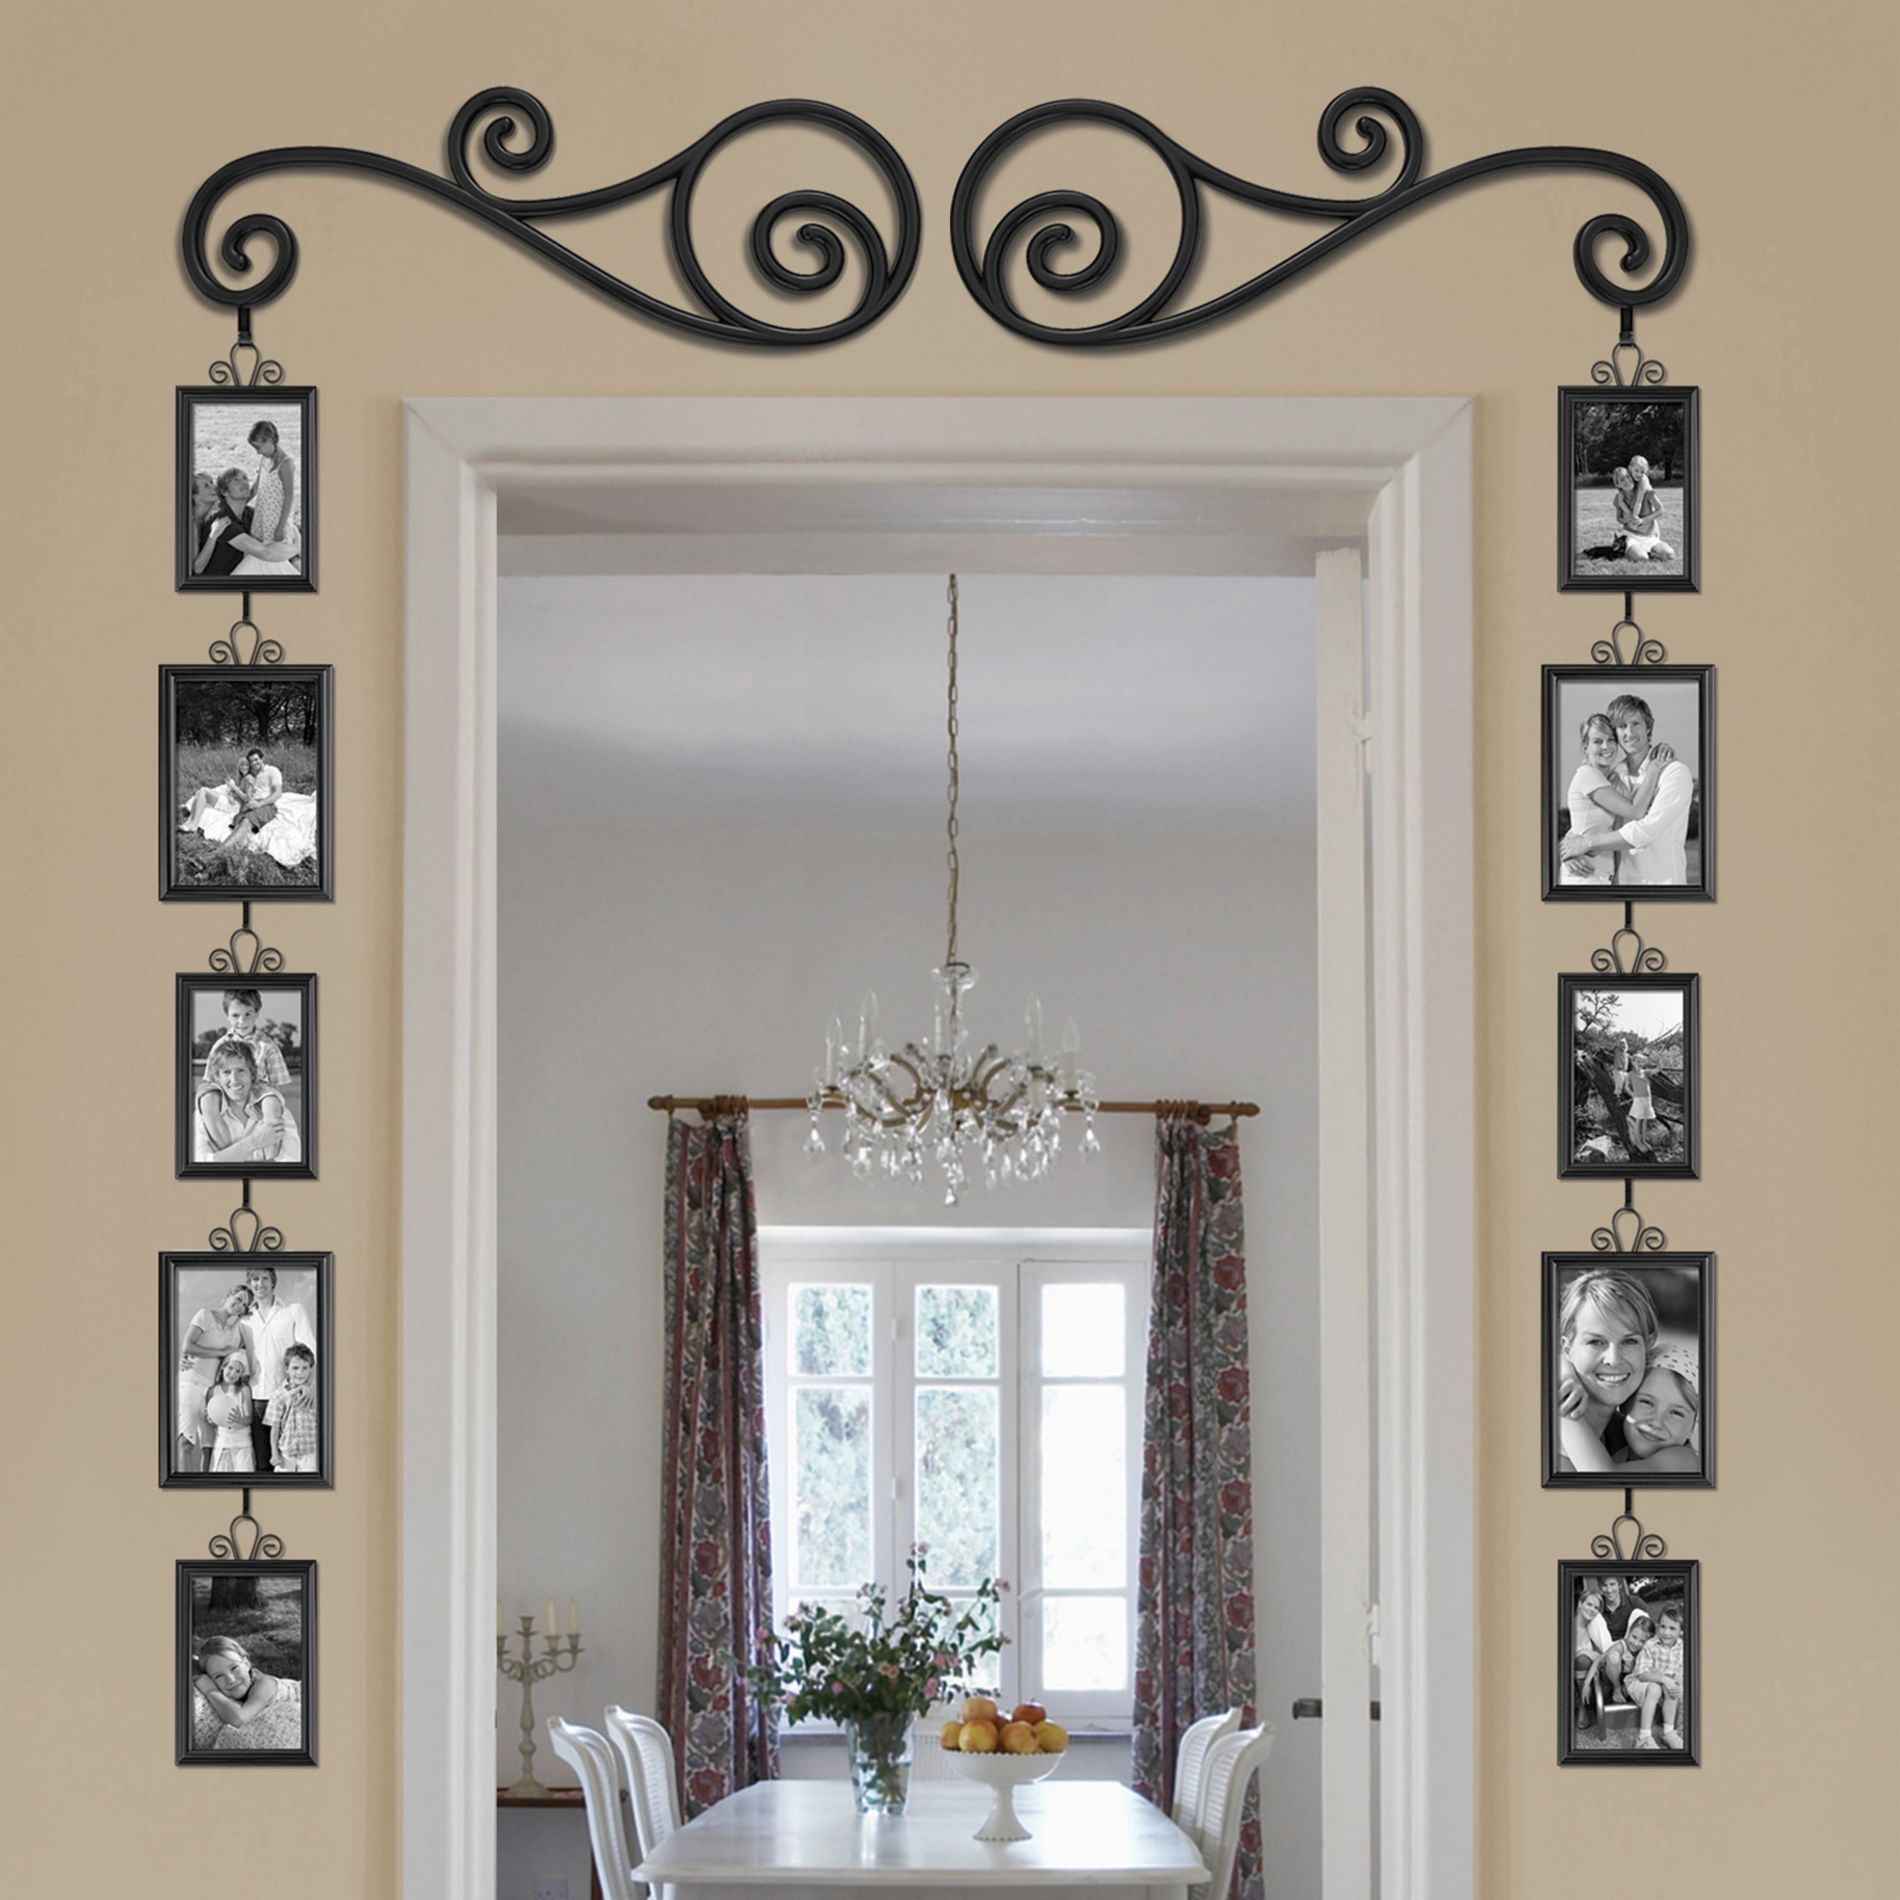 Hanging Scroll Picture Frame Set $29 99 uld hang on either side